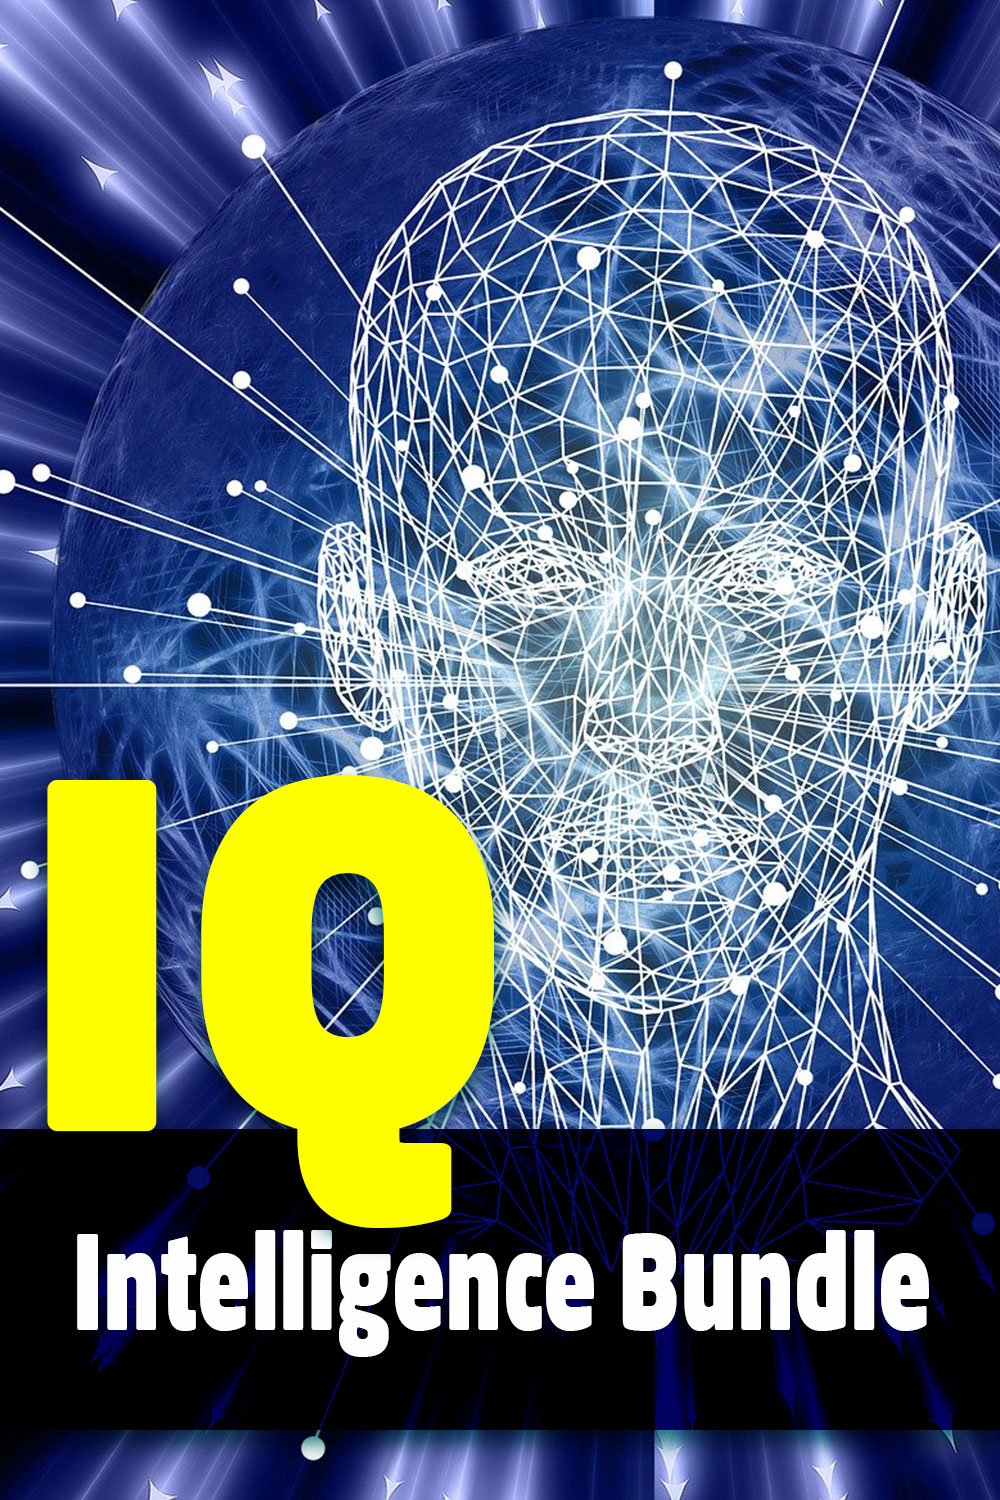 IQ - Intelligence Bundle